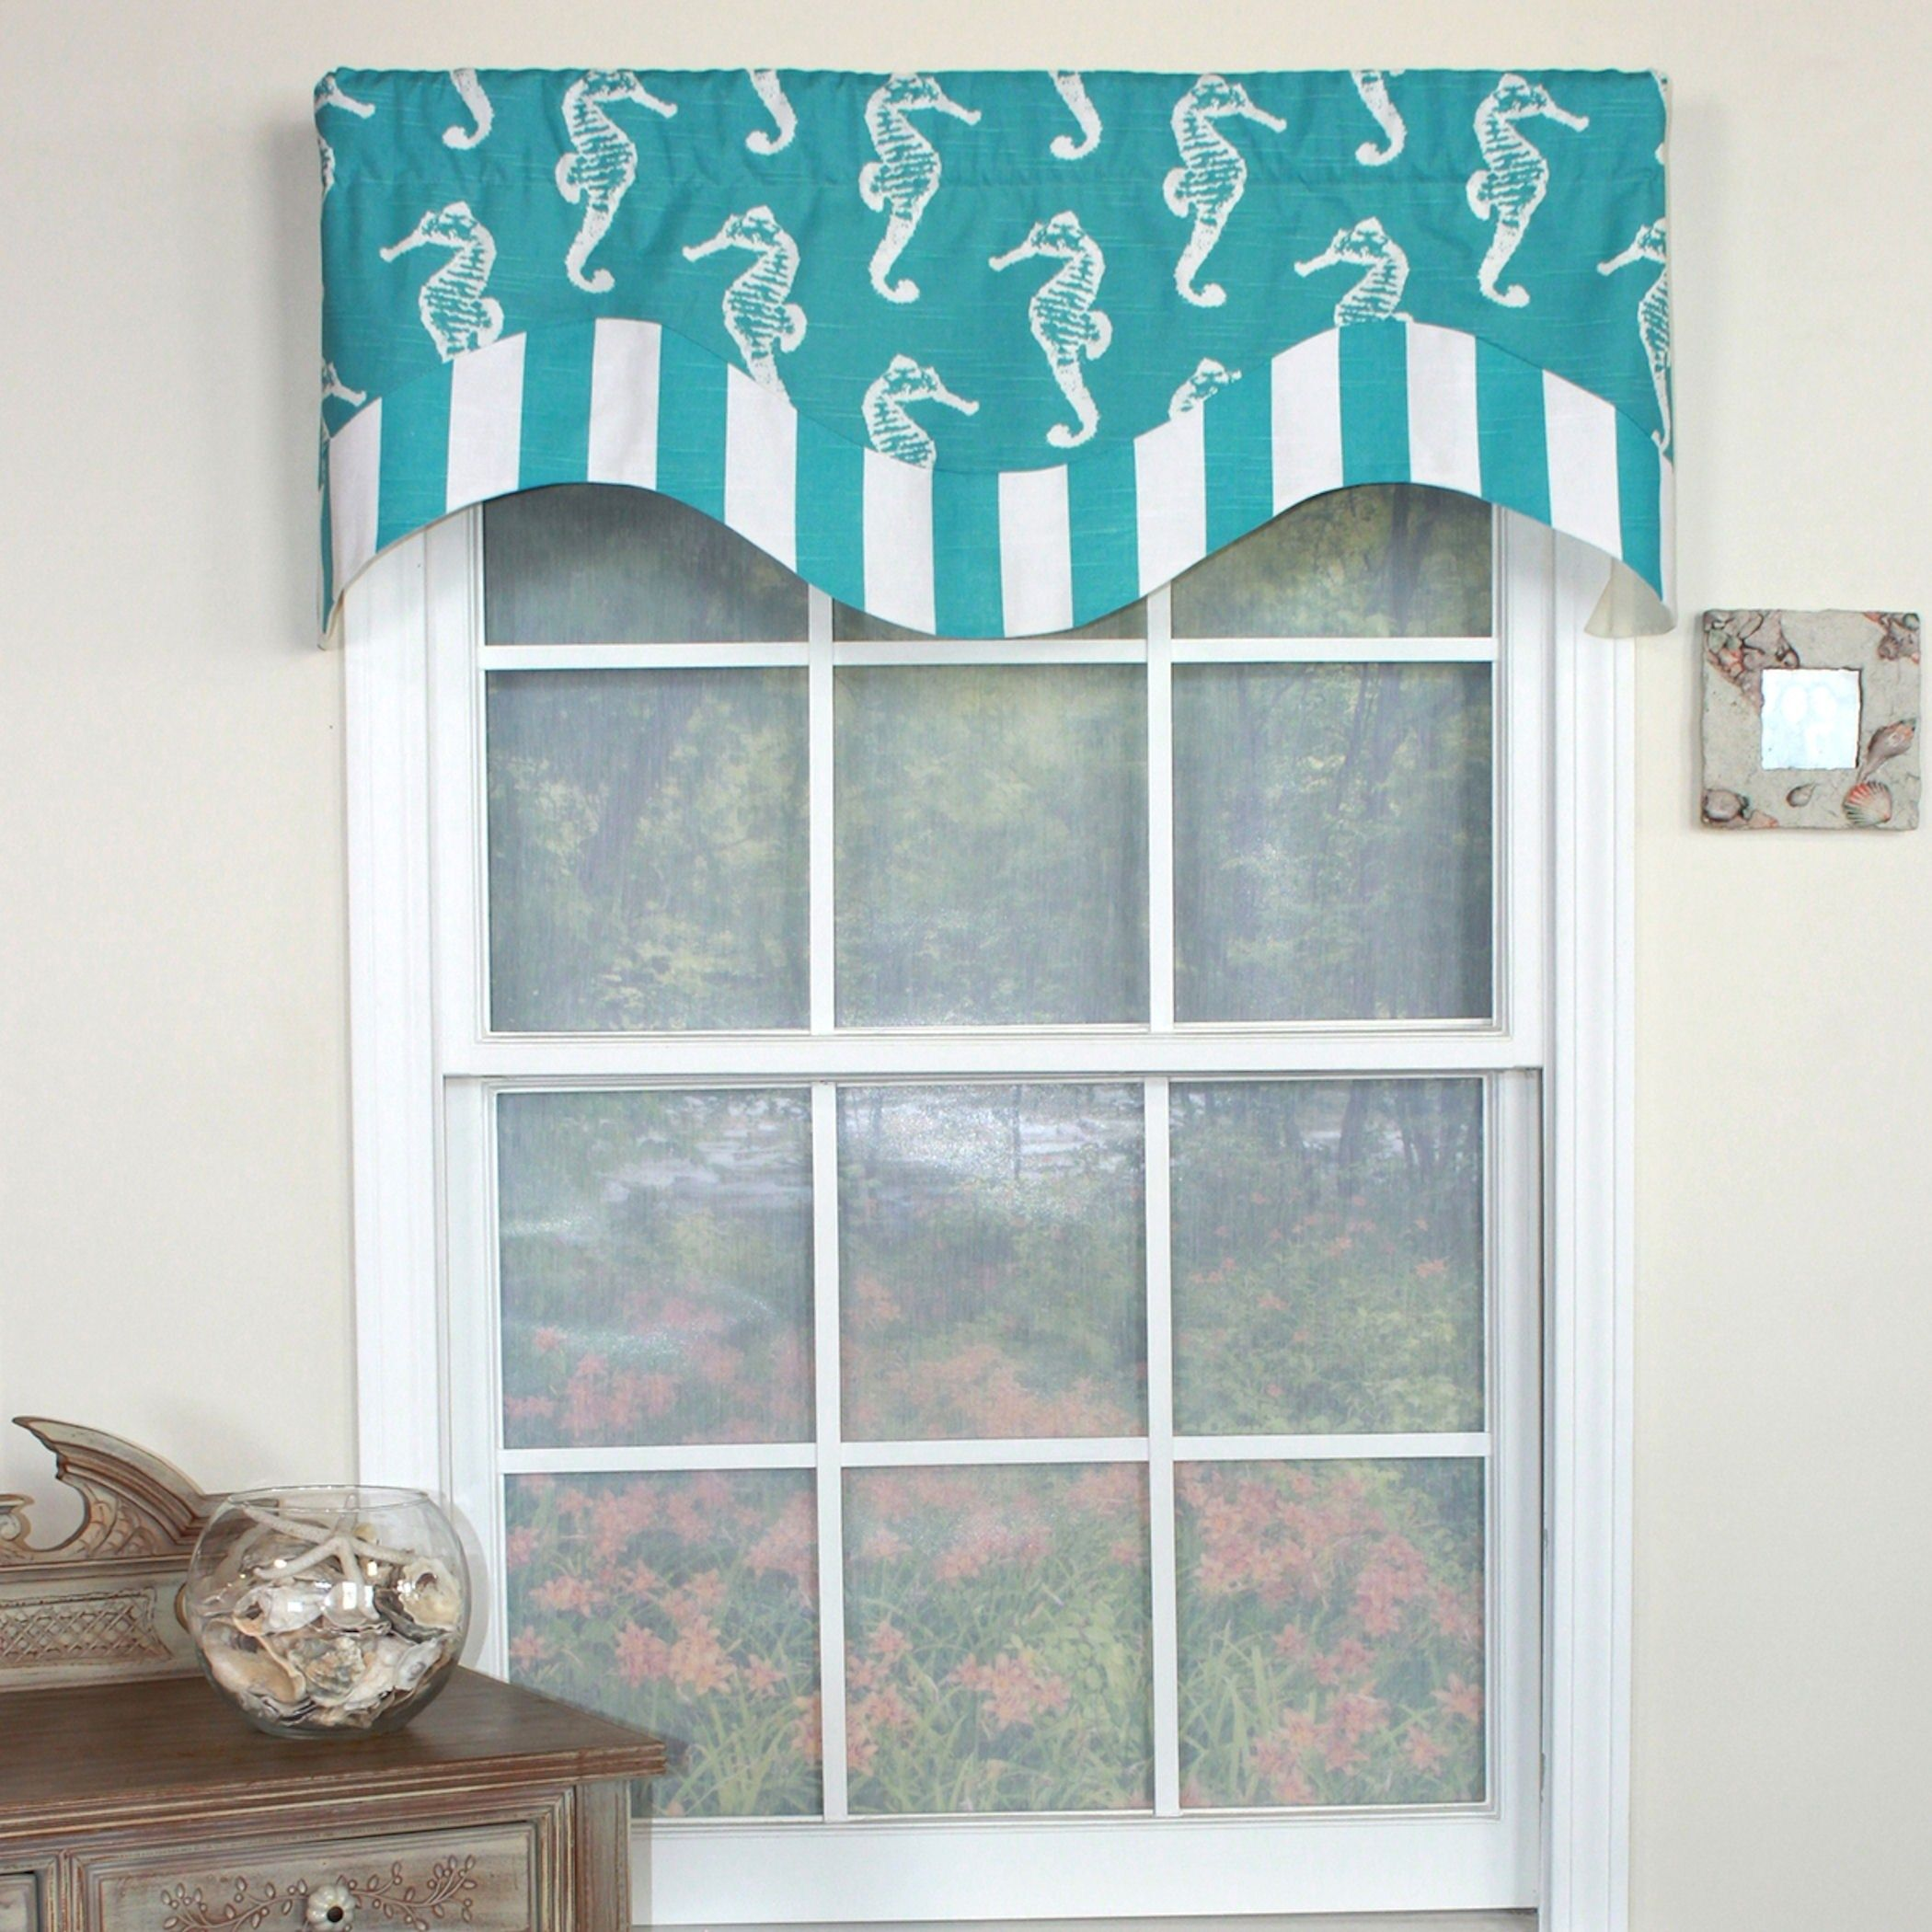 Rlf Home Sea Horse Double Face Window Valance Turquoise 100